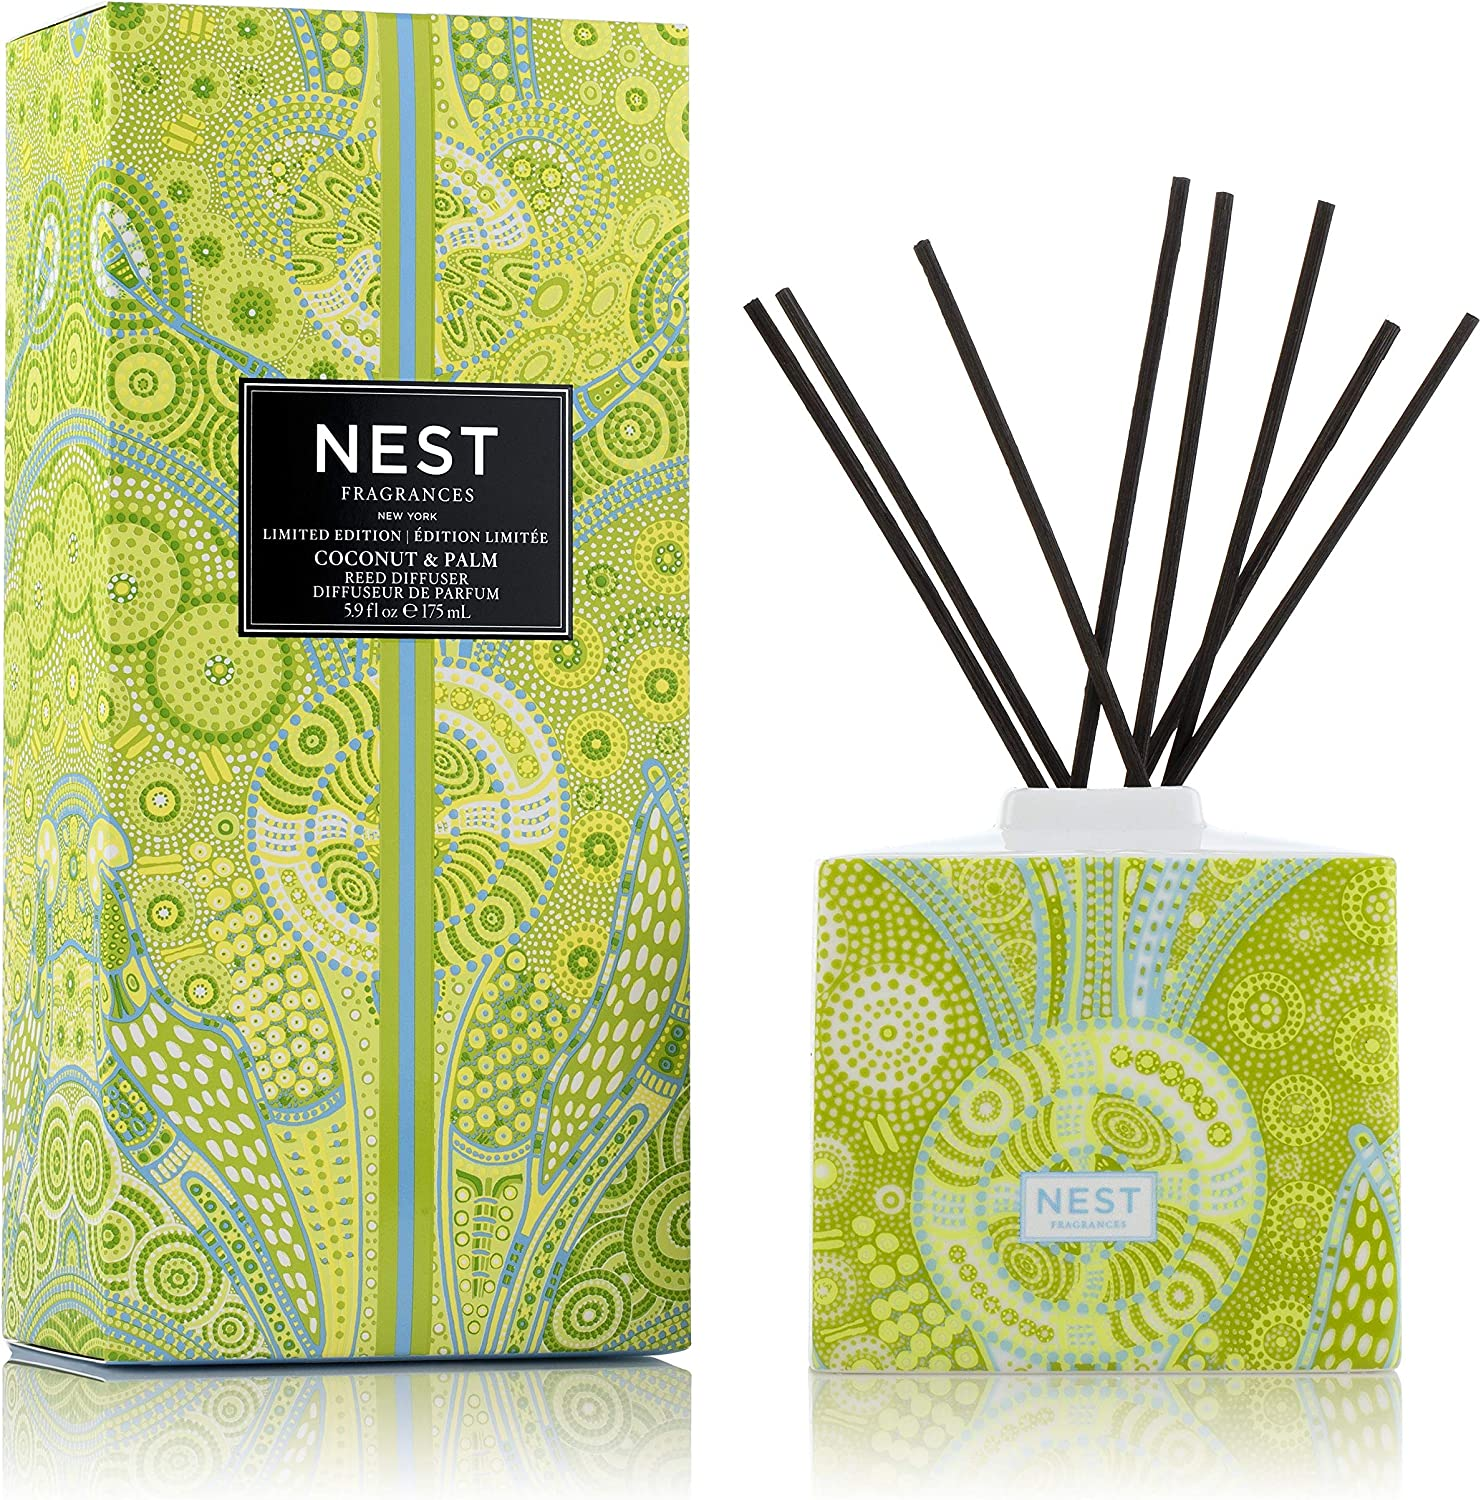 NEST Fragrances Coconut & Palm Limited Edition Summer 'Scape Reed Diffuser